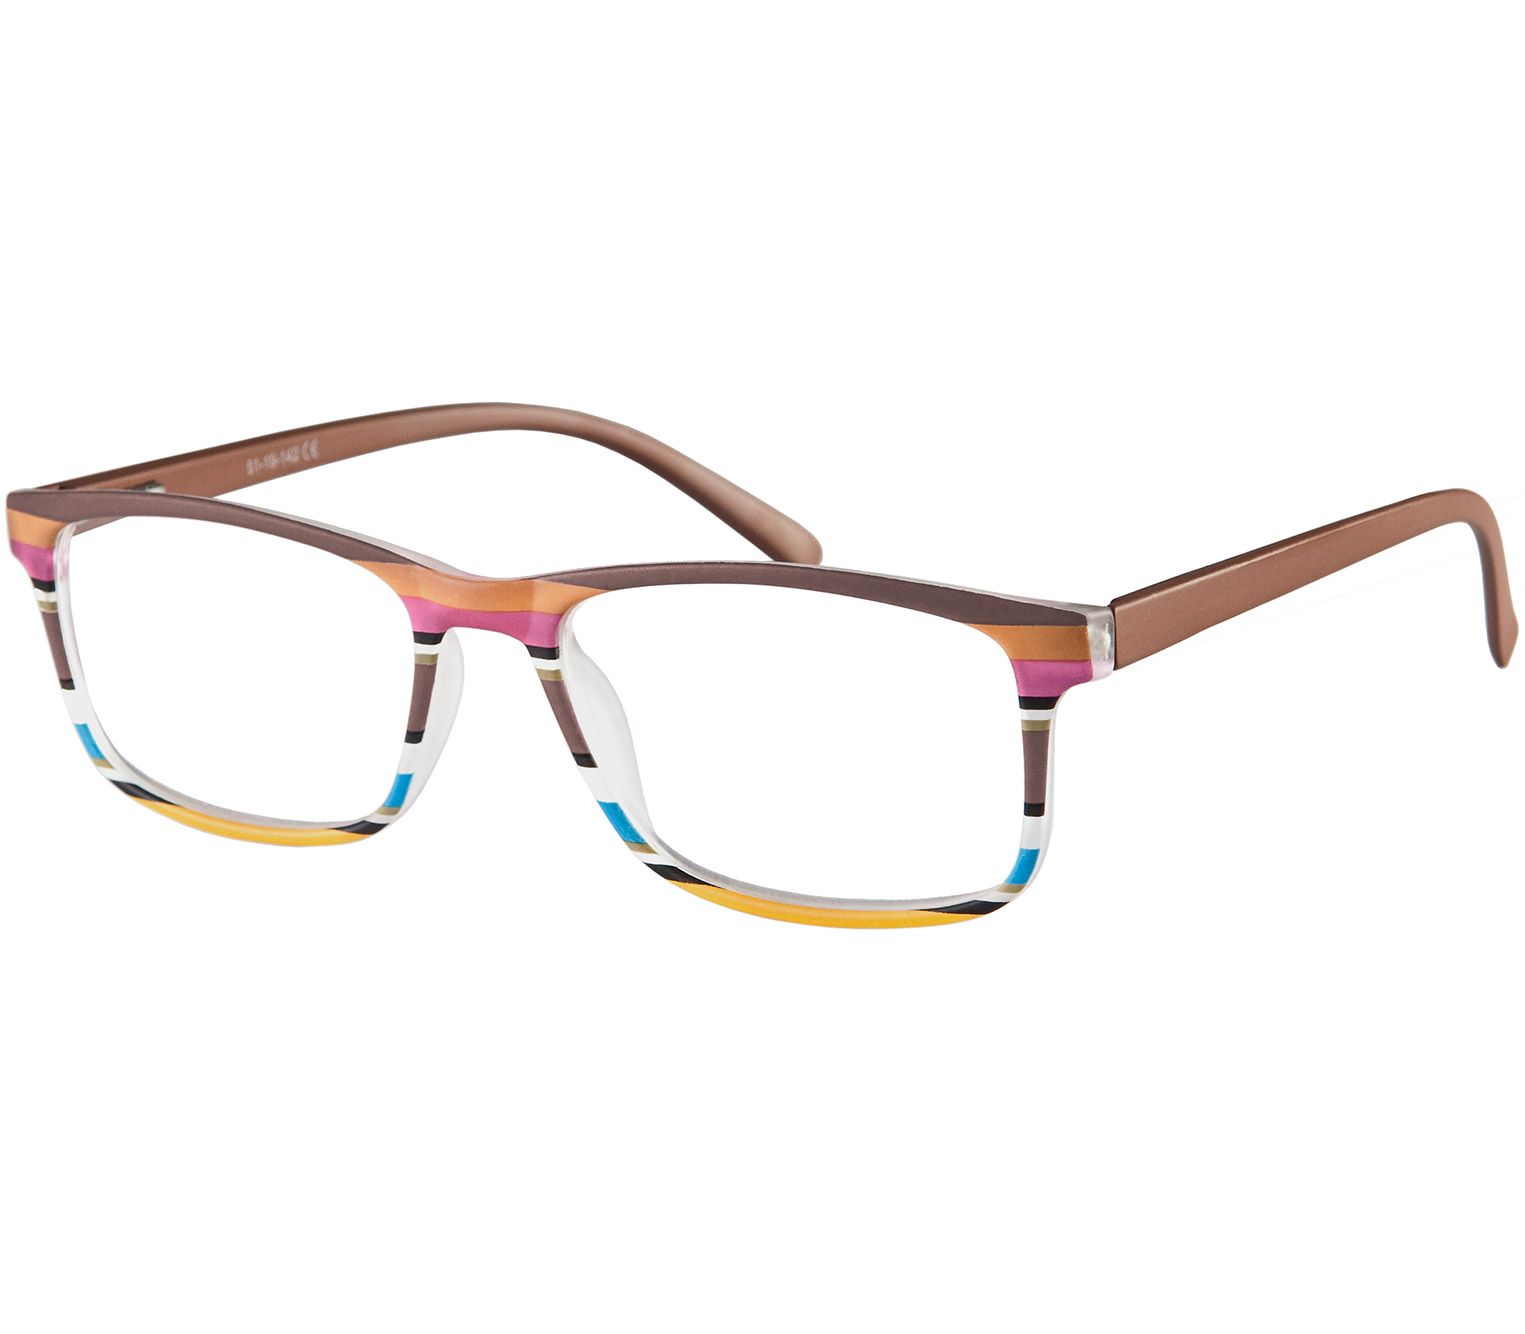 Main Image (Angle) - Samba (Brown) Classic Reading Glasses